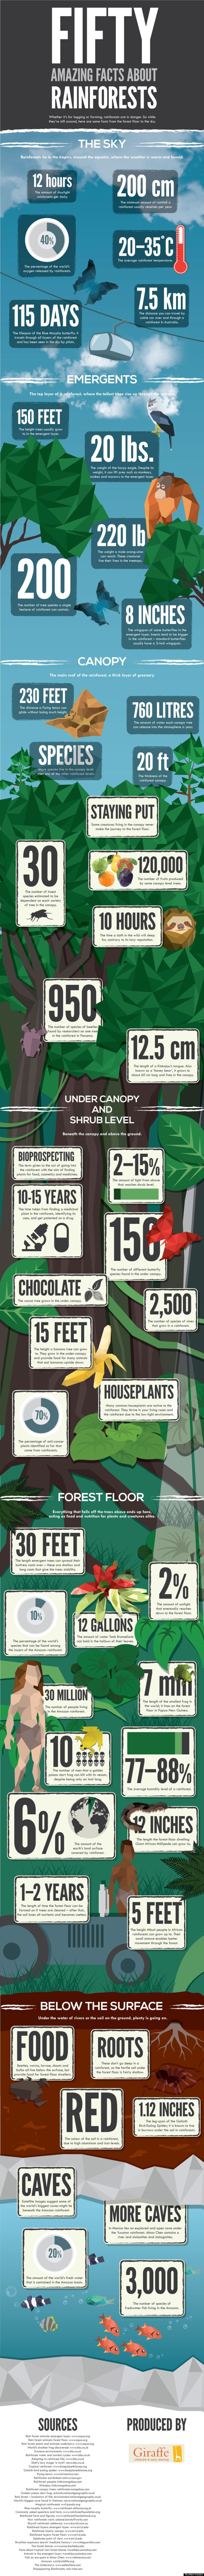 50 facts about rainforests infographic